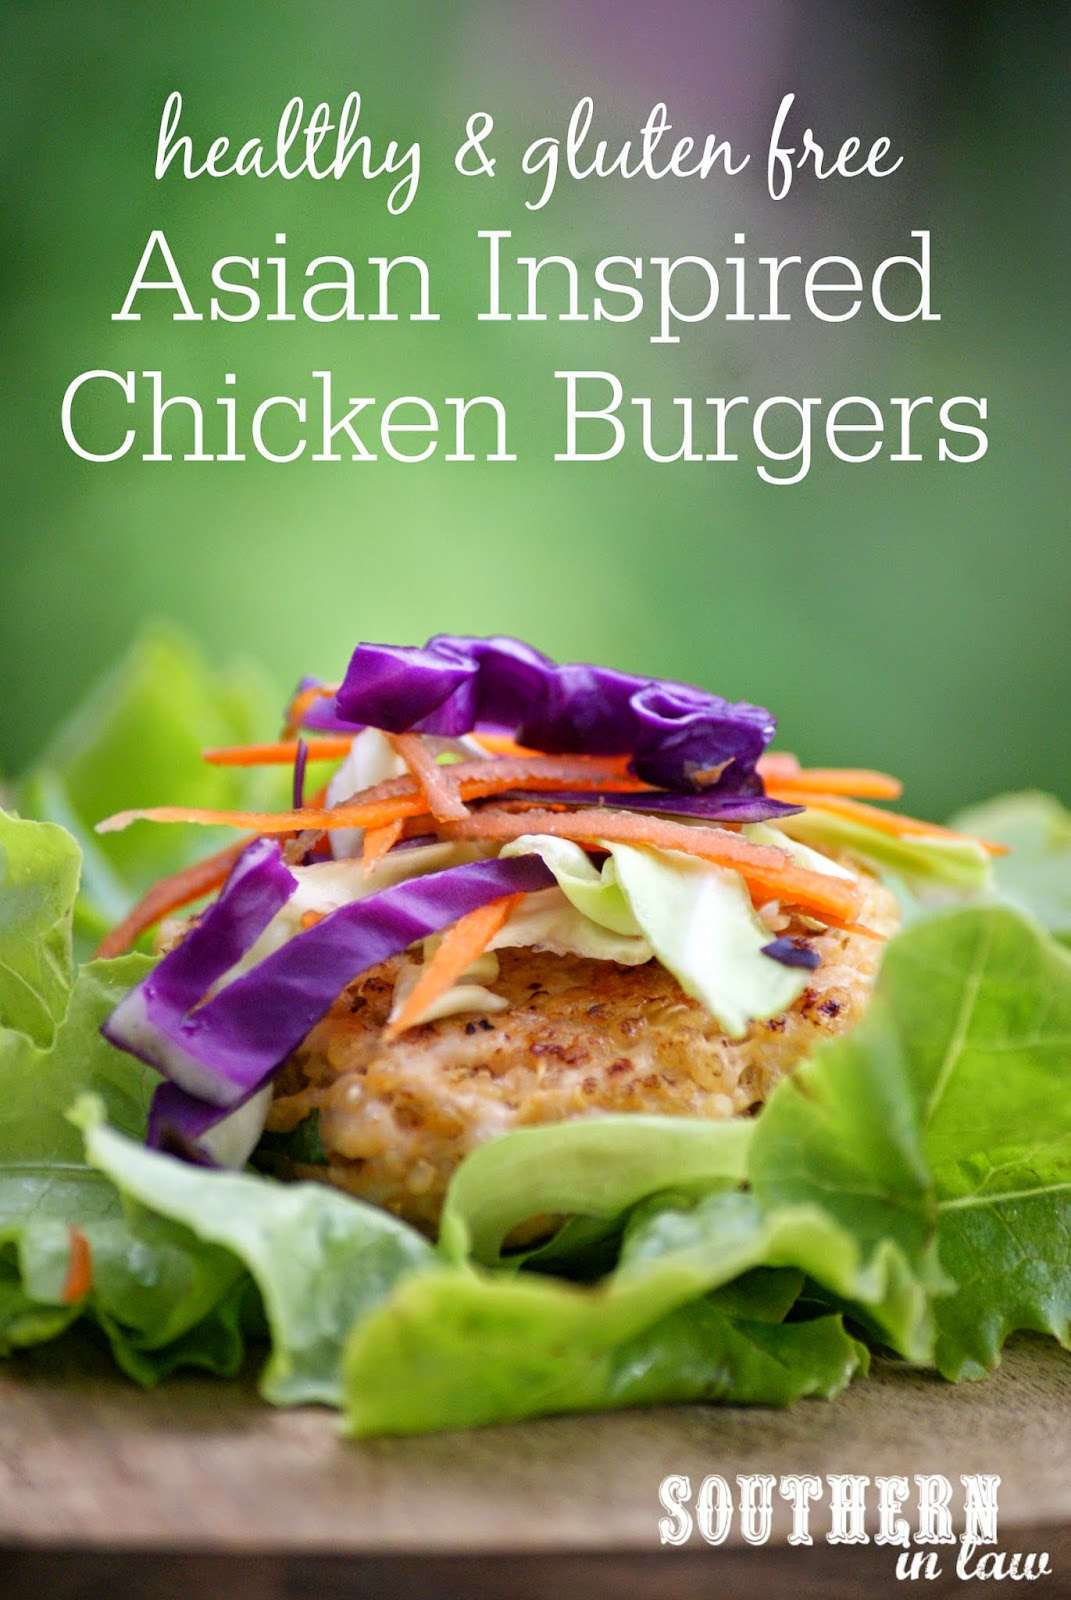 Asian Inspired Chicken Burger Recipe with Mayo and Asian Slaw - gluten free, low fat, healthy, clean eating friendly